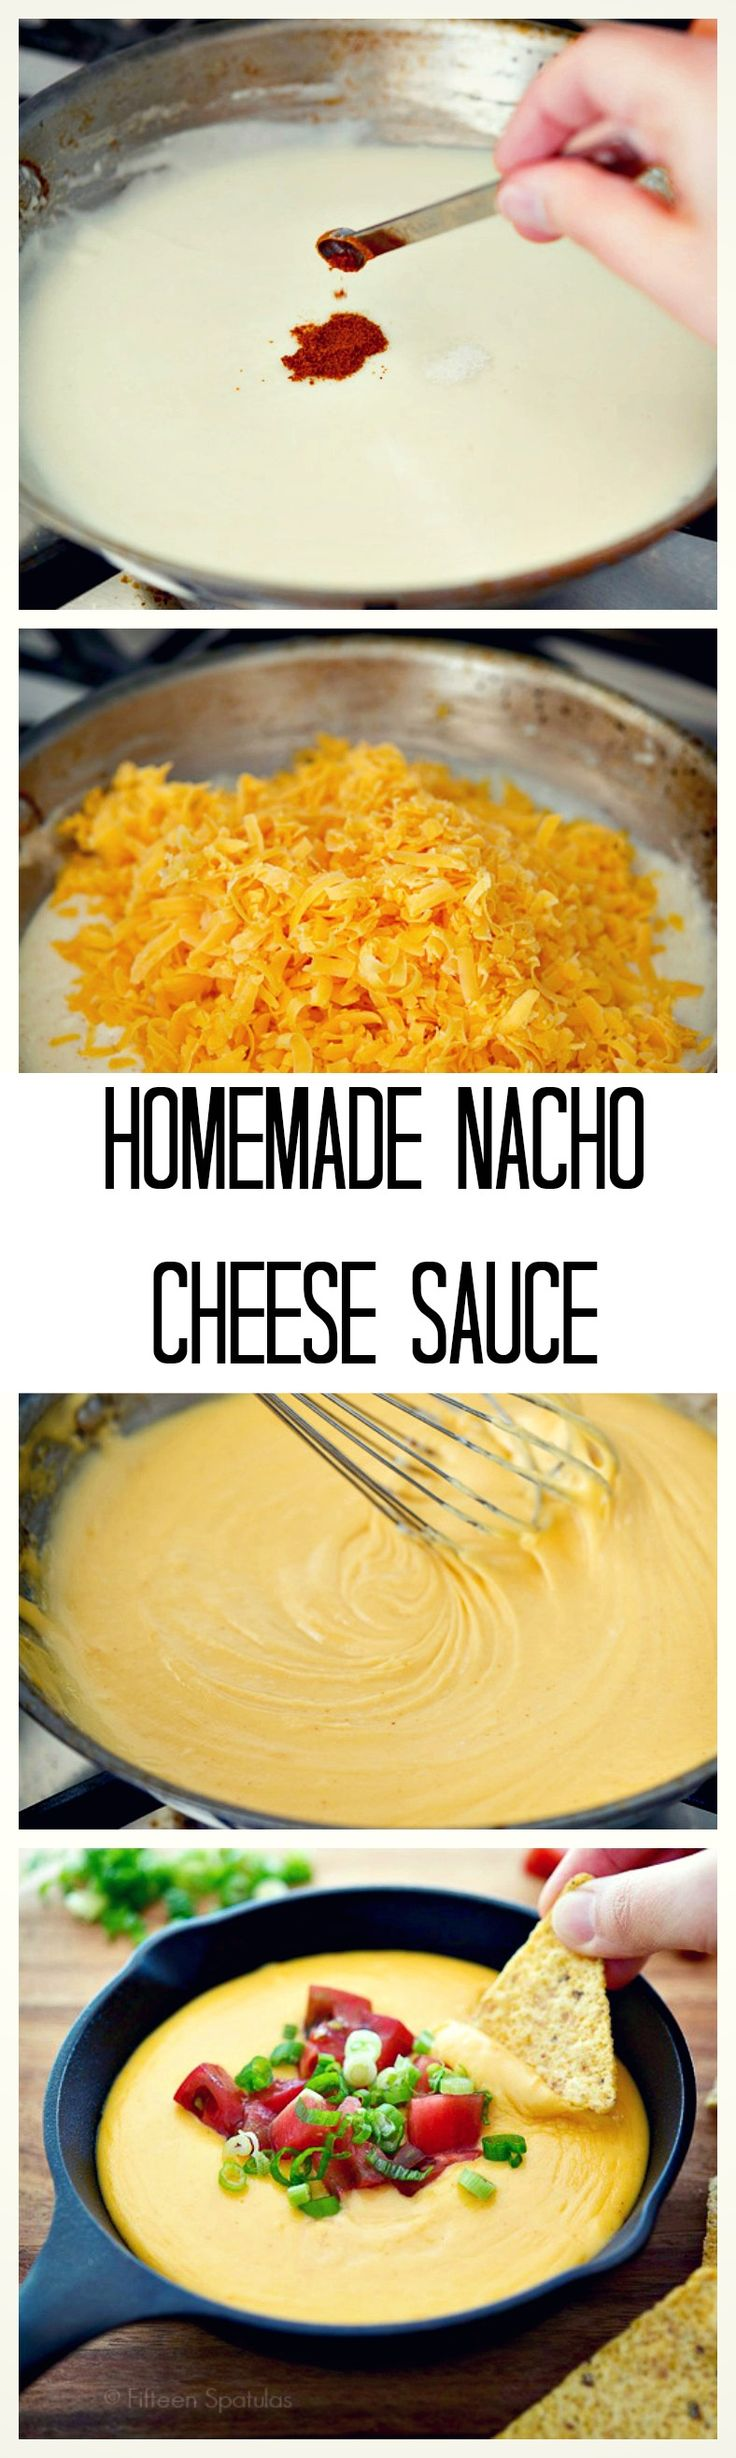 Homemade Nacho Cheese Sauce made with only five ingredients.